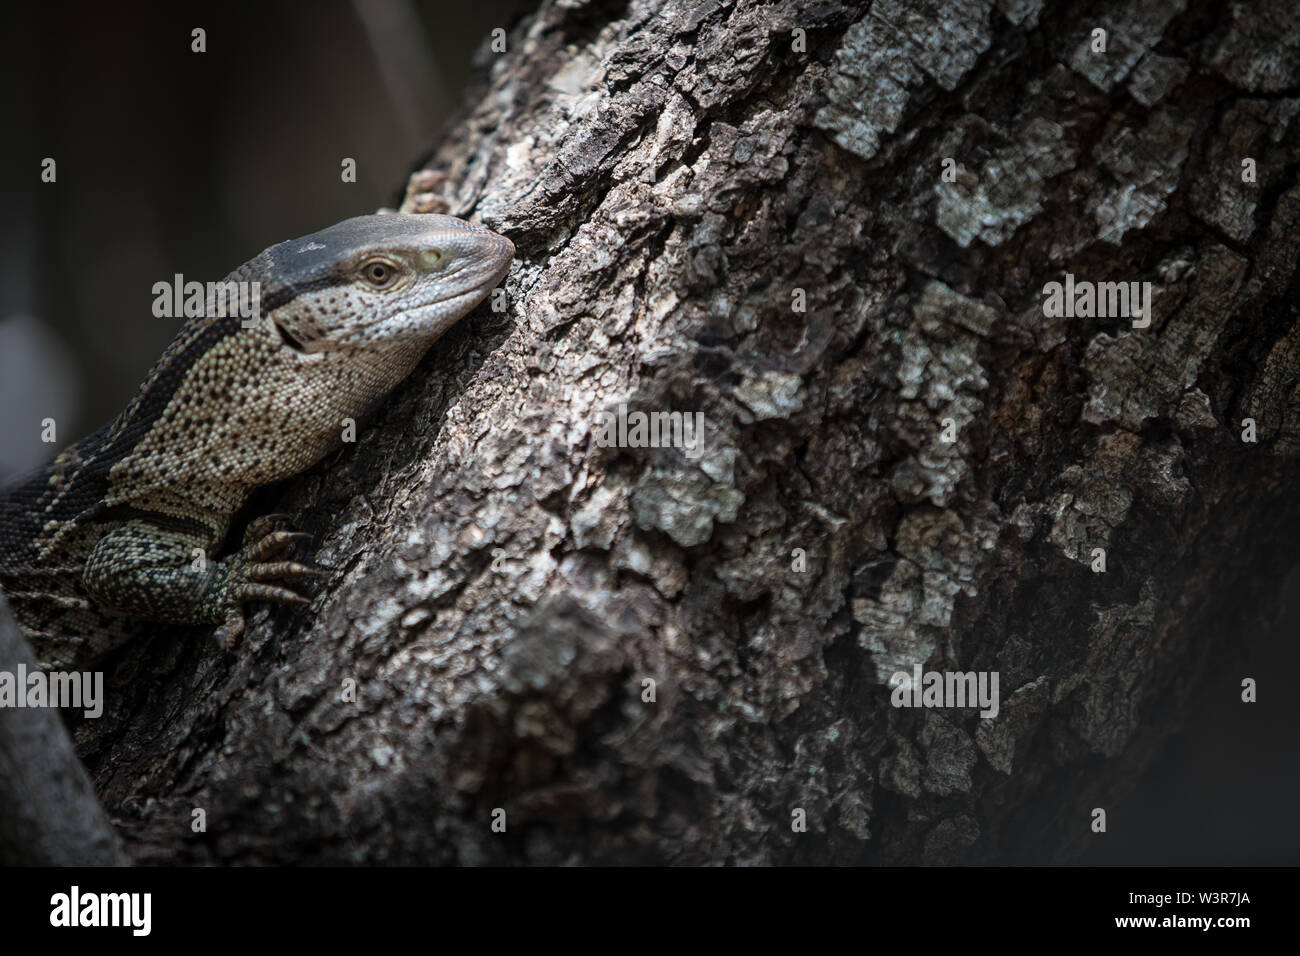 A rock monitor or white-throated monitor, Varanus albigularis climbs a tree in Madikwe Game Reserve, North West Province, South Africa. - Stock Image